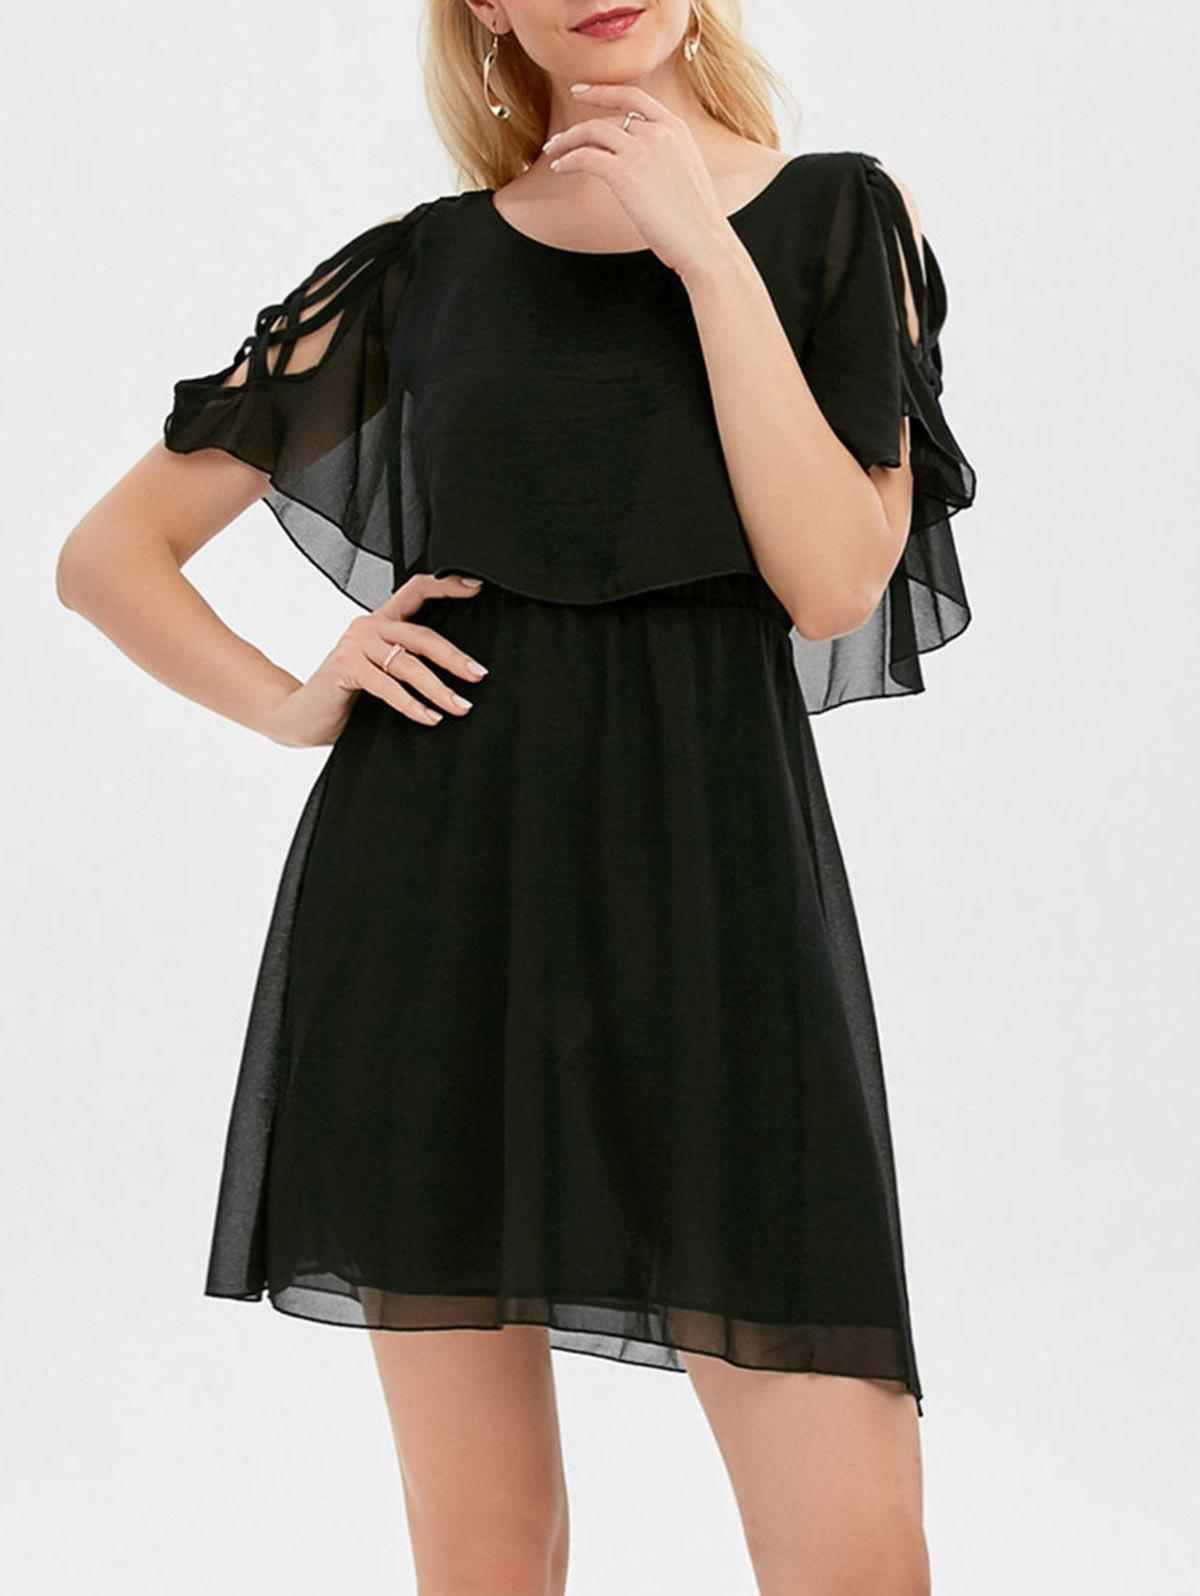 Ruffle Overlay Strappy Chiffon Cold Shoulder Dress ruffle chiffon cold shoulder mini dress